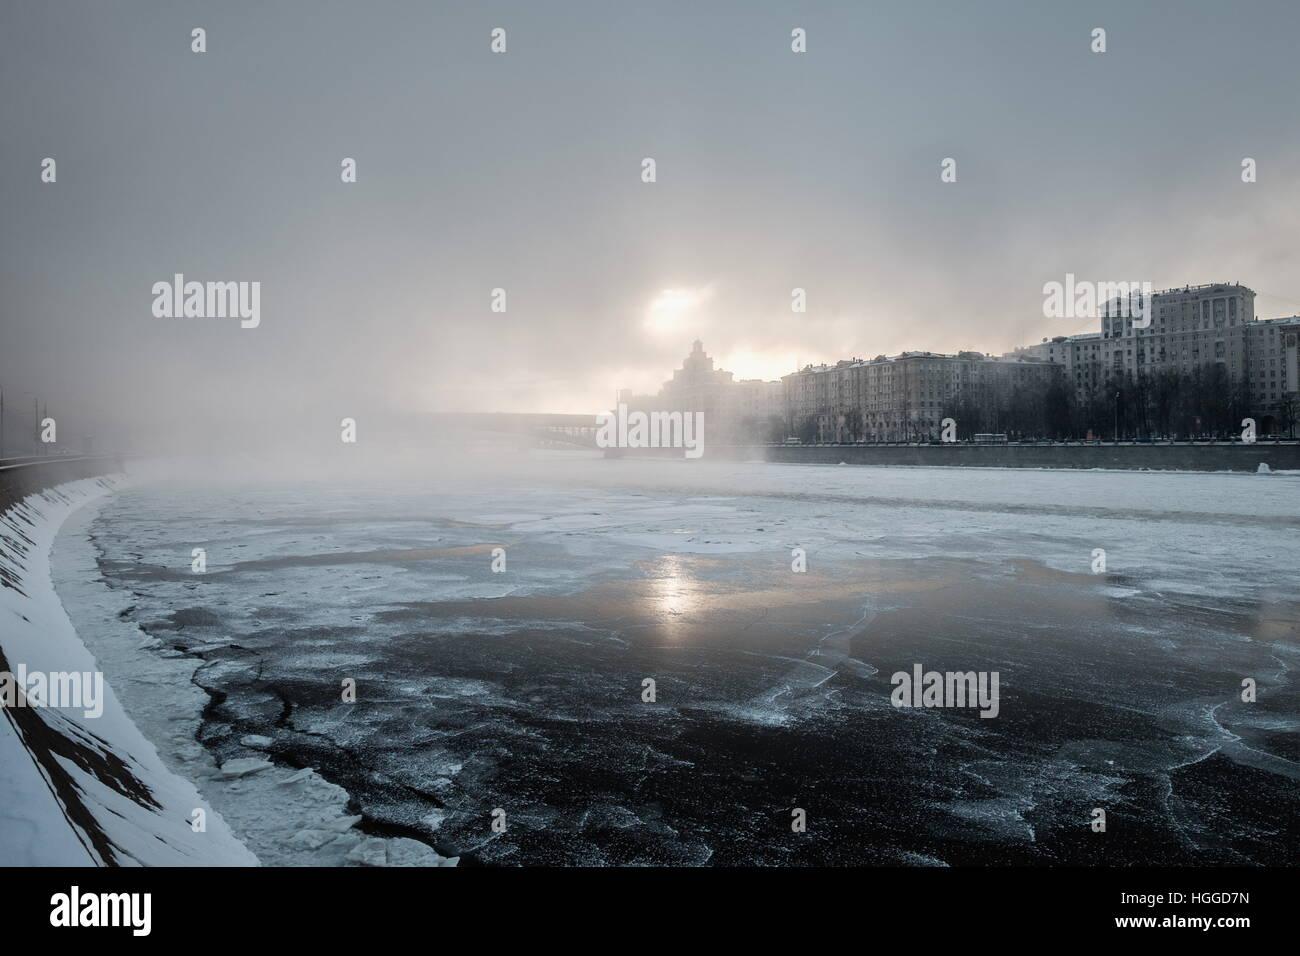 Moscow, Russia. 9th Jan, 2017. A view of the Moskva River ice-bound as frost hits the city. © Stoyan Vassev/TASS/Alamy Stock Photo